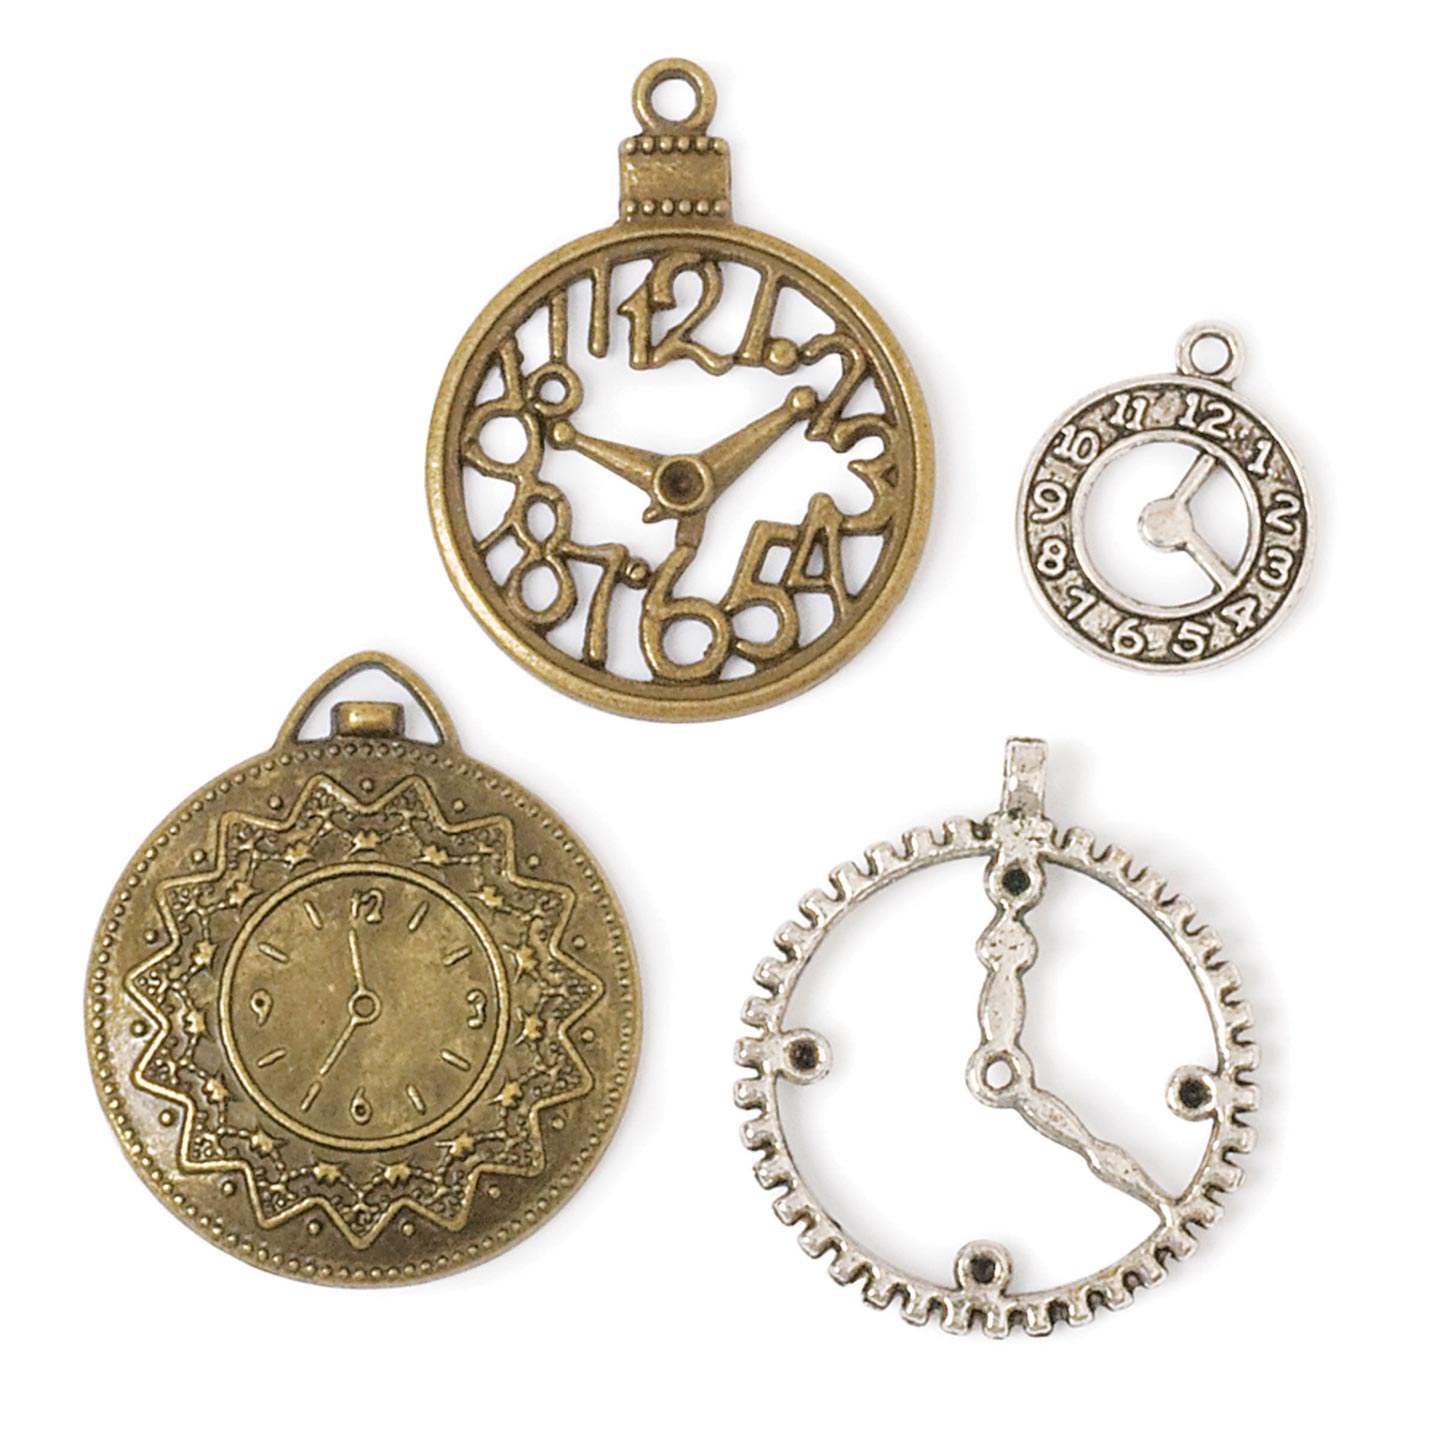 Steampunk Charms: Clock Charm Pack in Antique Gold & Silver